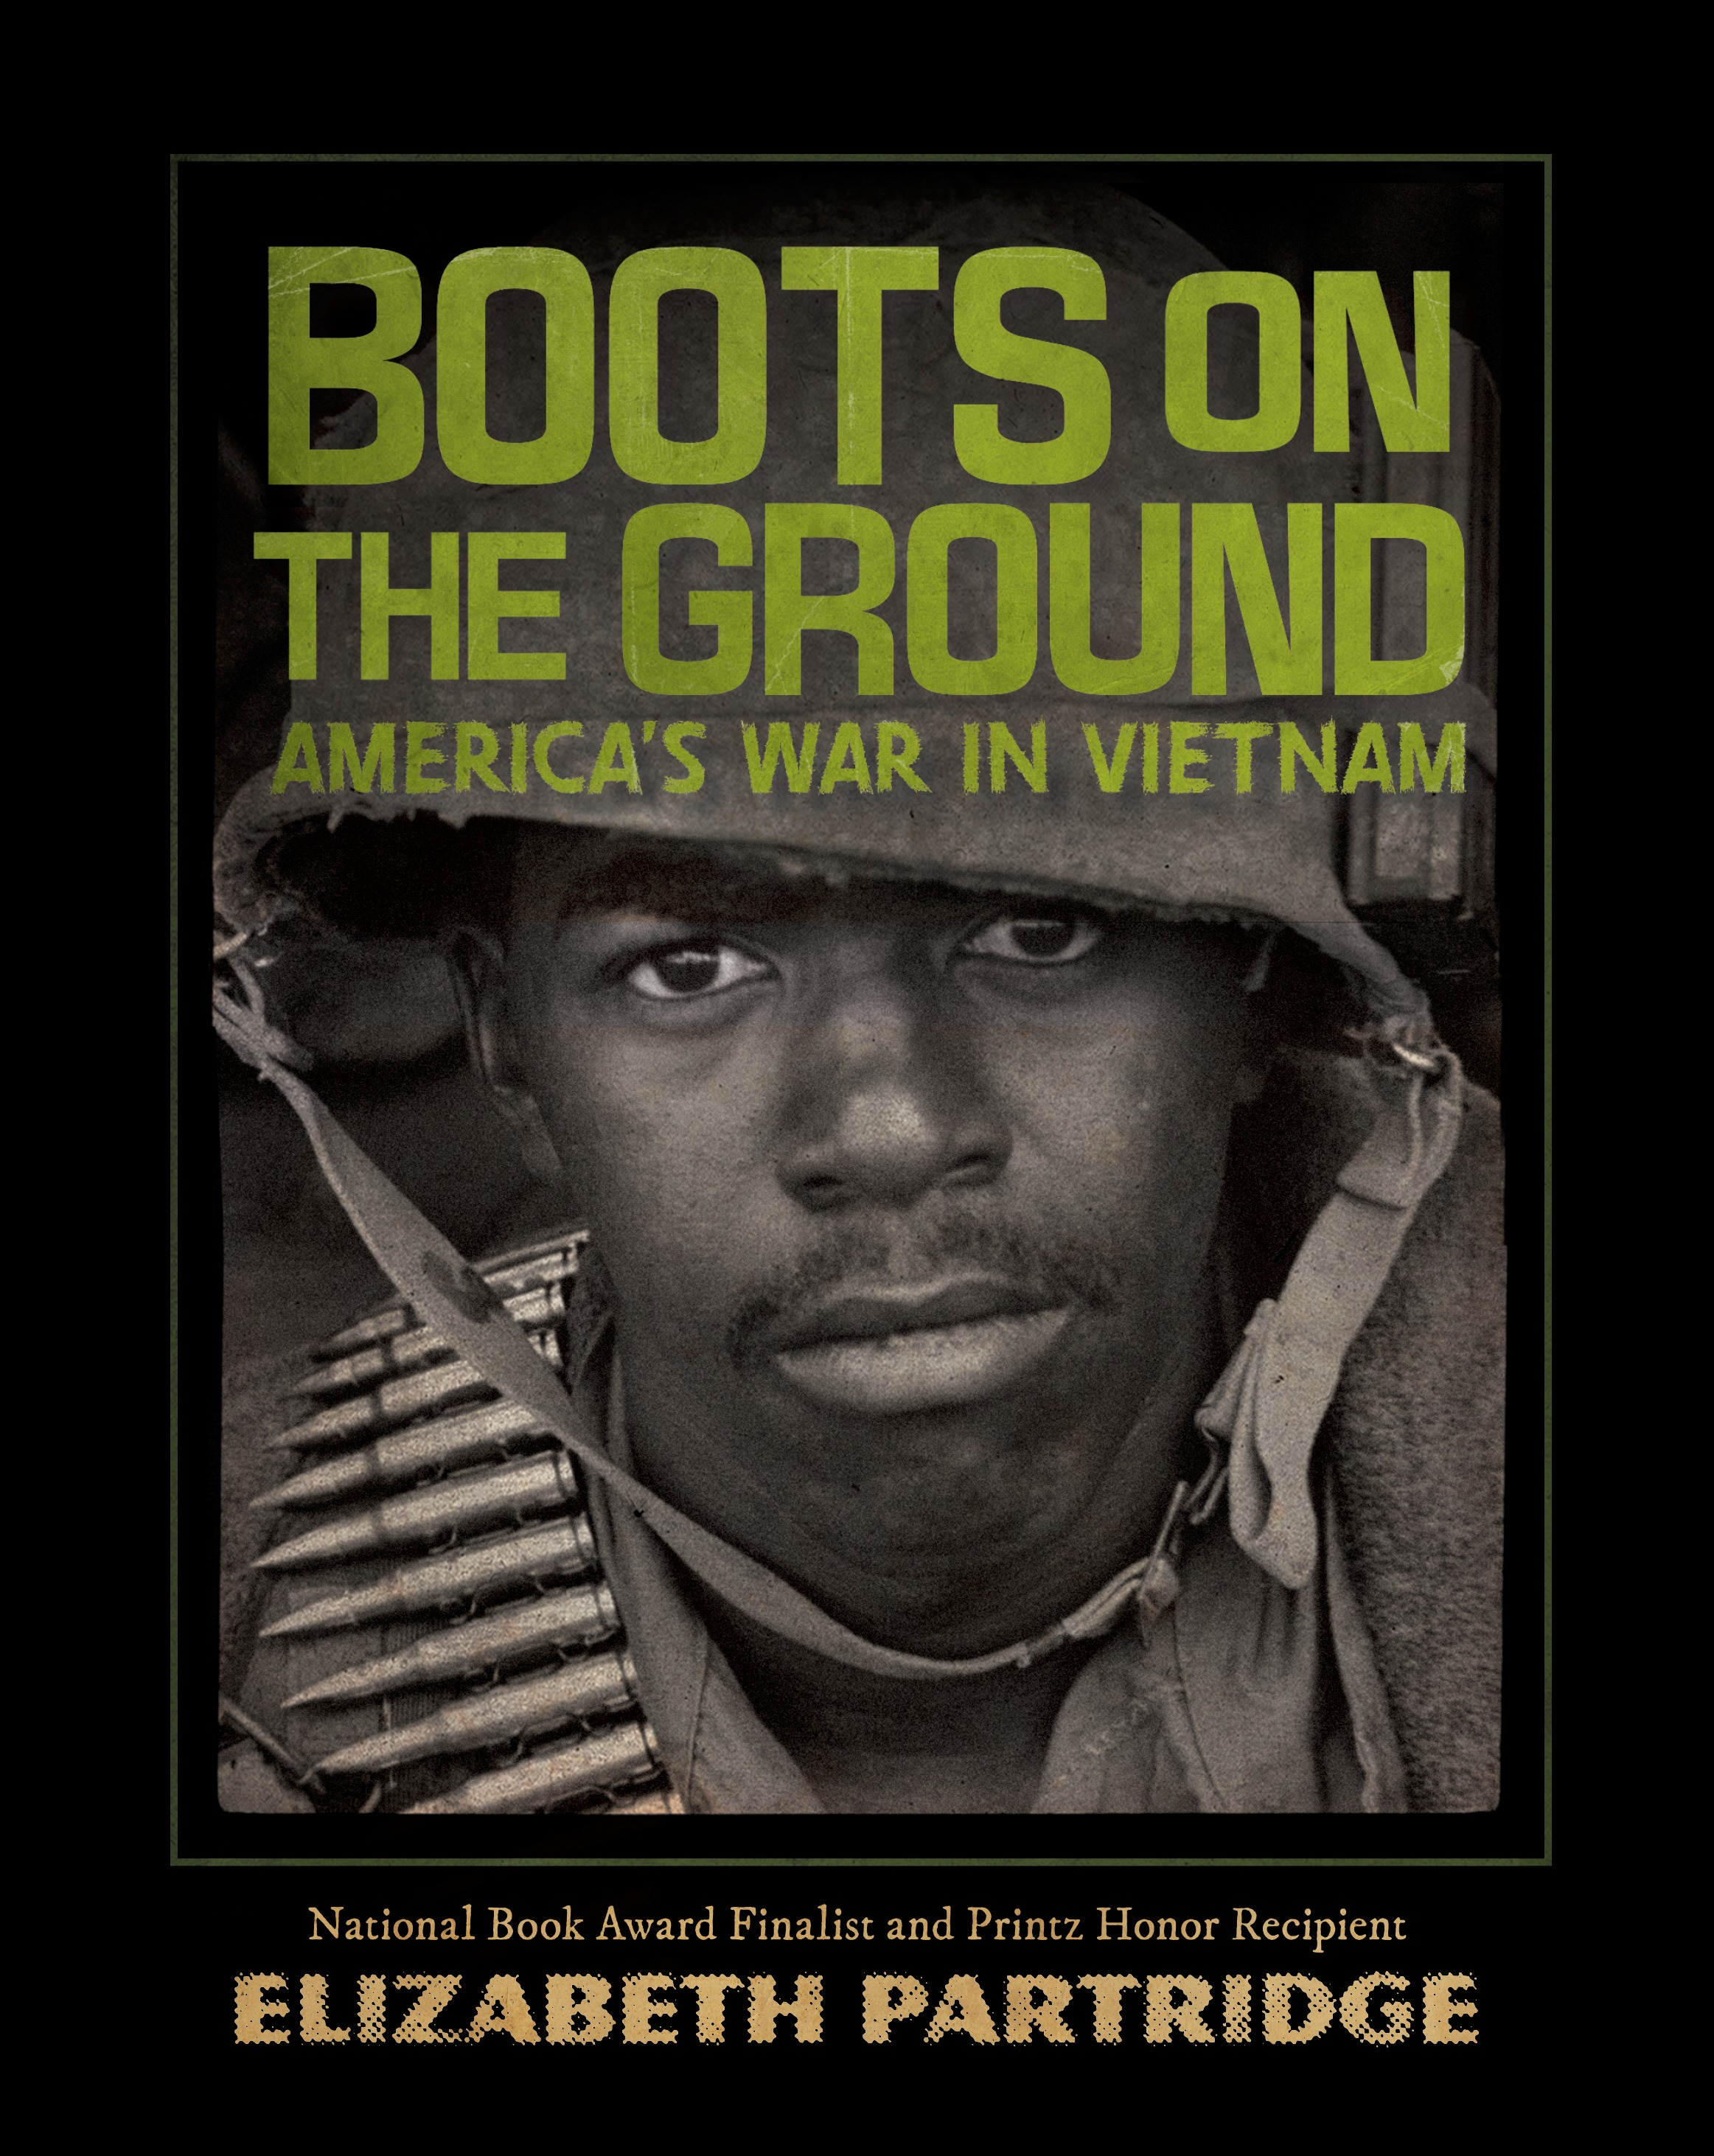 The War - The American men sent to Vietnam to fight. The women who cared for their broken bodies. The protestors at home, and the politicians who sent the next young men to Vietnam. The Vietnamese who fled.The Vietnam War directly involved four U.S. presidents and cut short the lives of nearly 60,000 American soldiers during more than a decade of fighting. It polarized and divided our country in ways that still have not healed.The history of this era is complex; the cultural impact extraordinary. But it's the personal stories of eight people—six American soldiers, one American nurse, and one Vietnamese refugee—that create the heartbeat of Boots on the Ground. From dense jungles and terrifying firefights to chaotic medic rescues and evacuations, each individual experience reveals a different facet of the war and moves us forward in time. Alternating with these chapters are profiles of key American leaders and events, reminding us of all that was happening at home, from Kent State to Woodstock to Watergate.Viking Young Readers 2018ShelfTalkerElizabeth Partridge uses the voices of presidents, infantrymen, nurses, protestors and others to bring readers an approachable and captivating history of the Vietnam War.